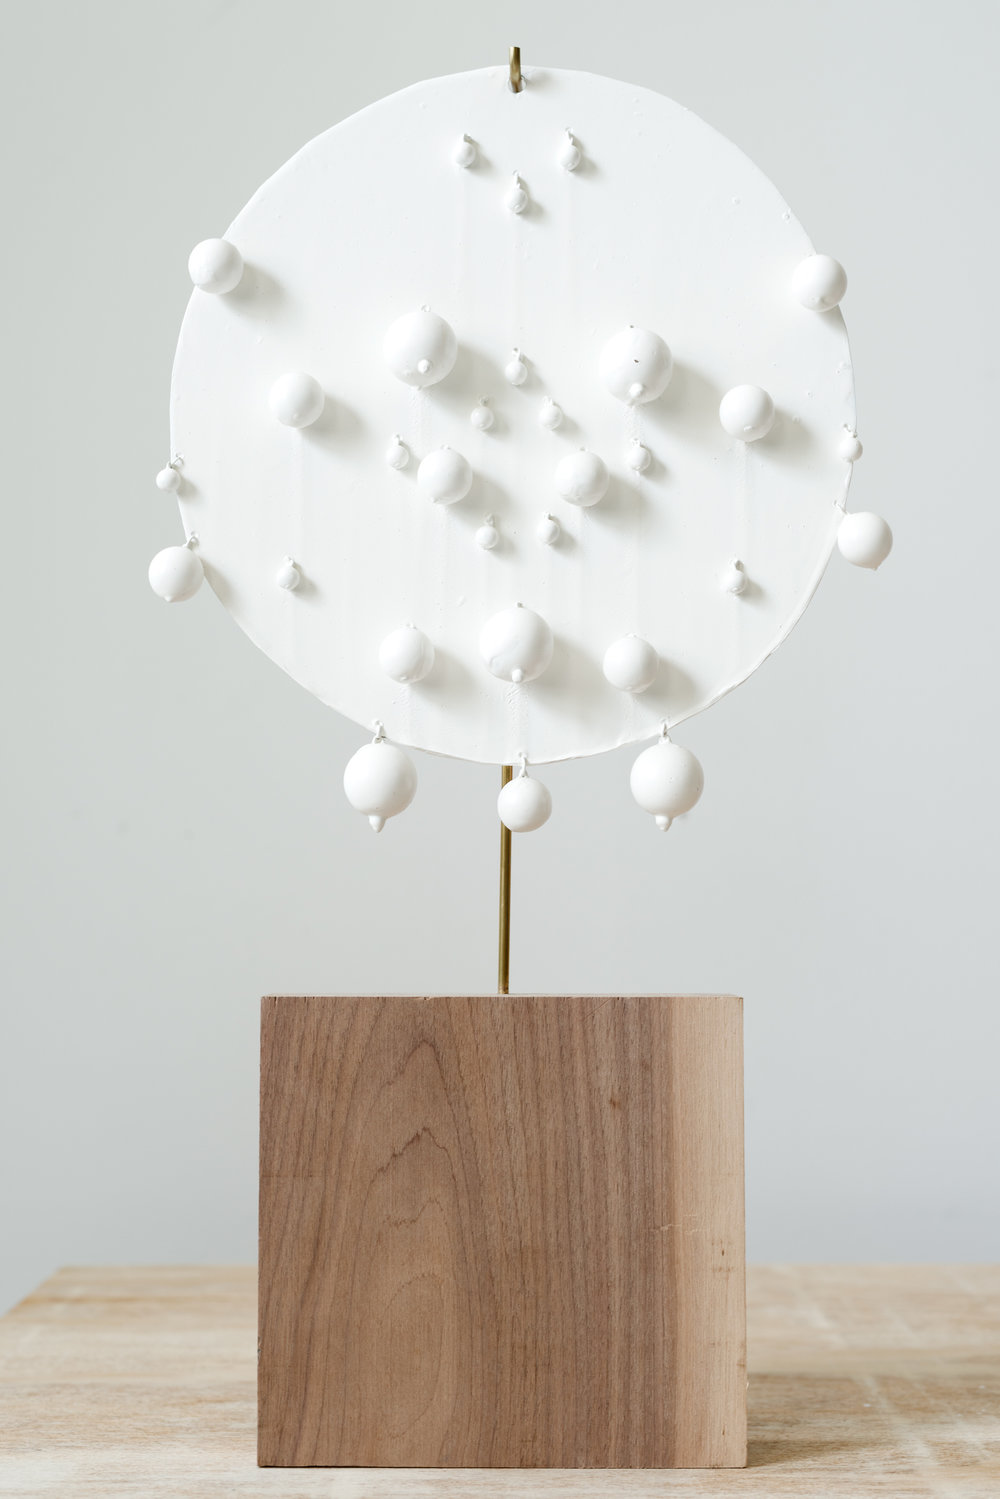 Disk VII,  2012 Acrylic medium coated aluminum, Lucite, brass, wood 19 x 10 x 2 inches